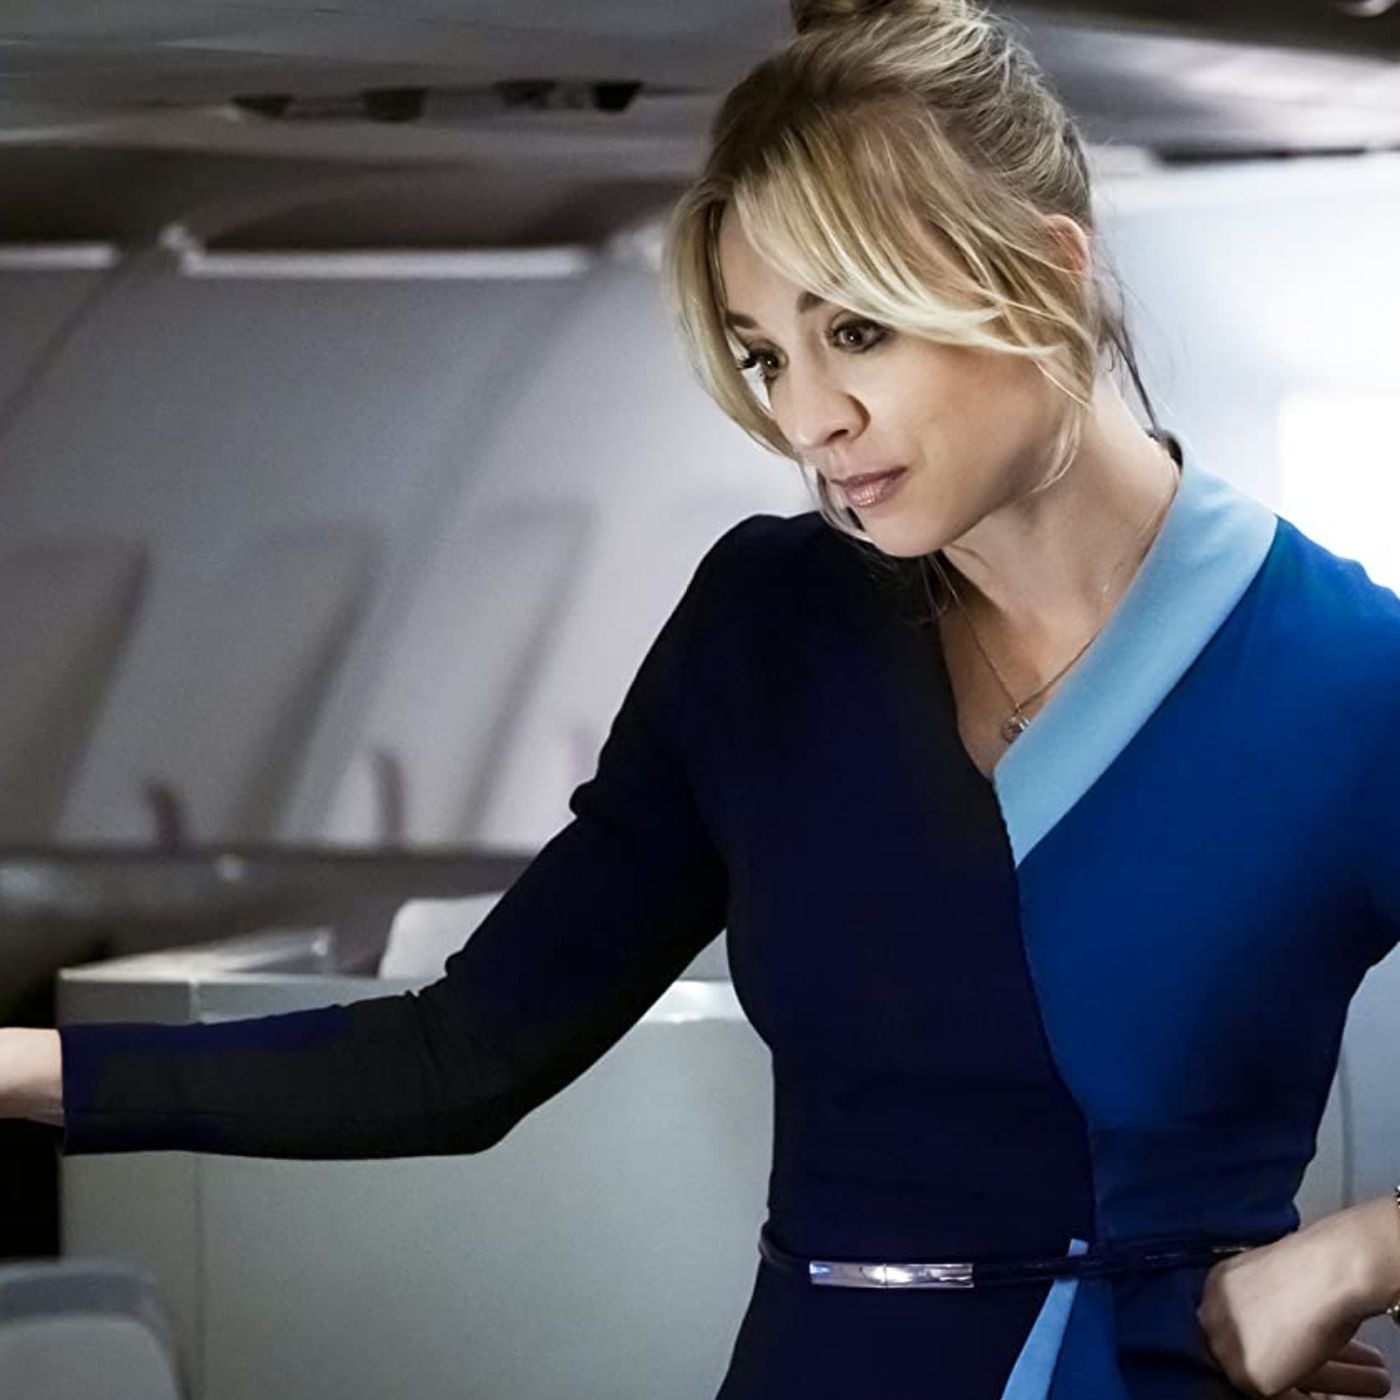 Geek Vibes Review: The Flight Attendant Season One